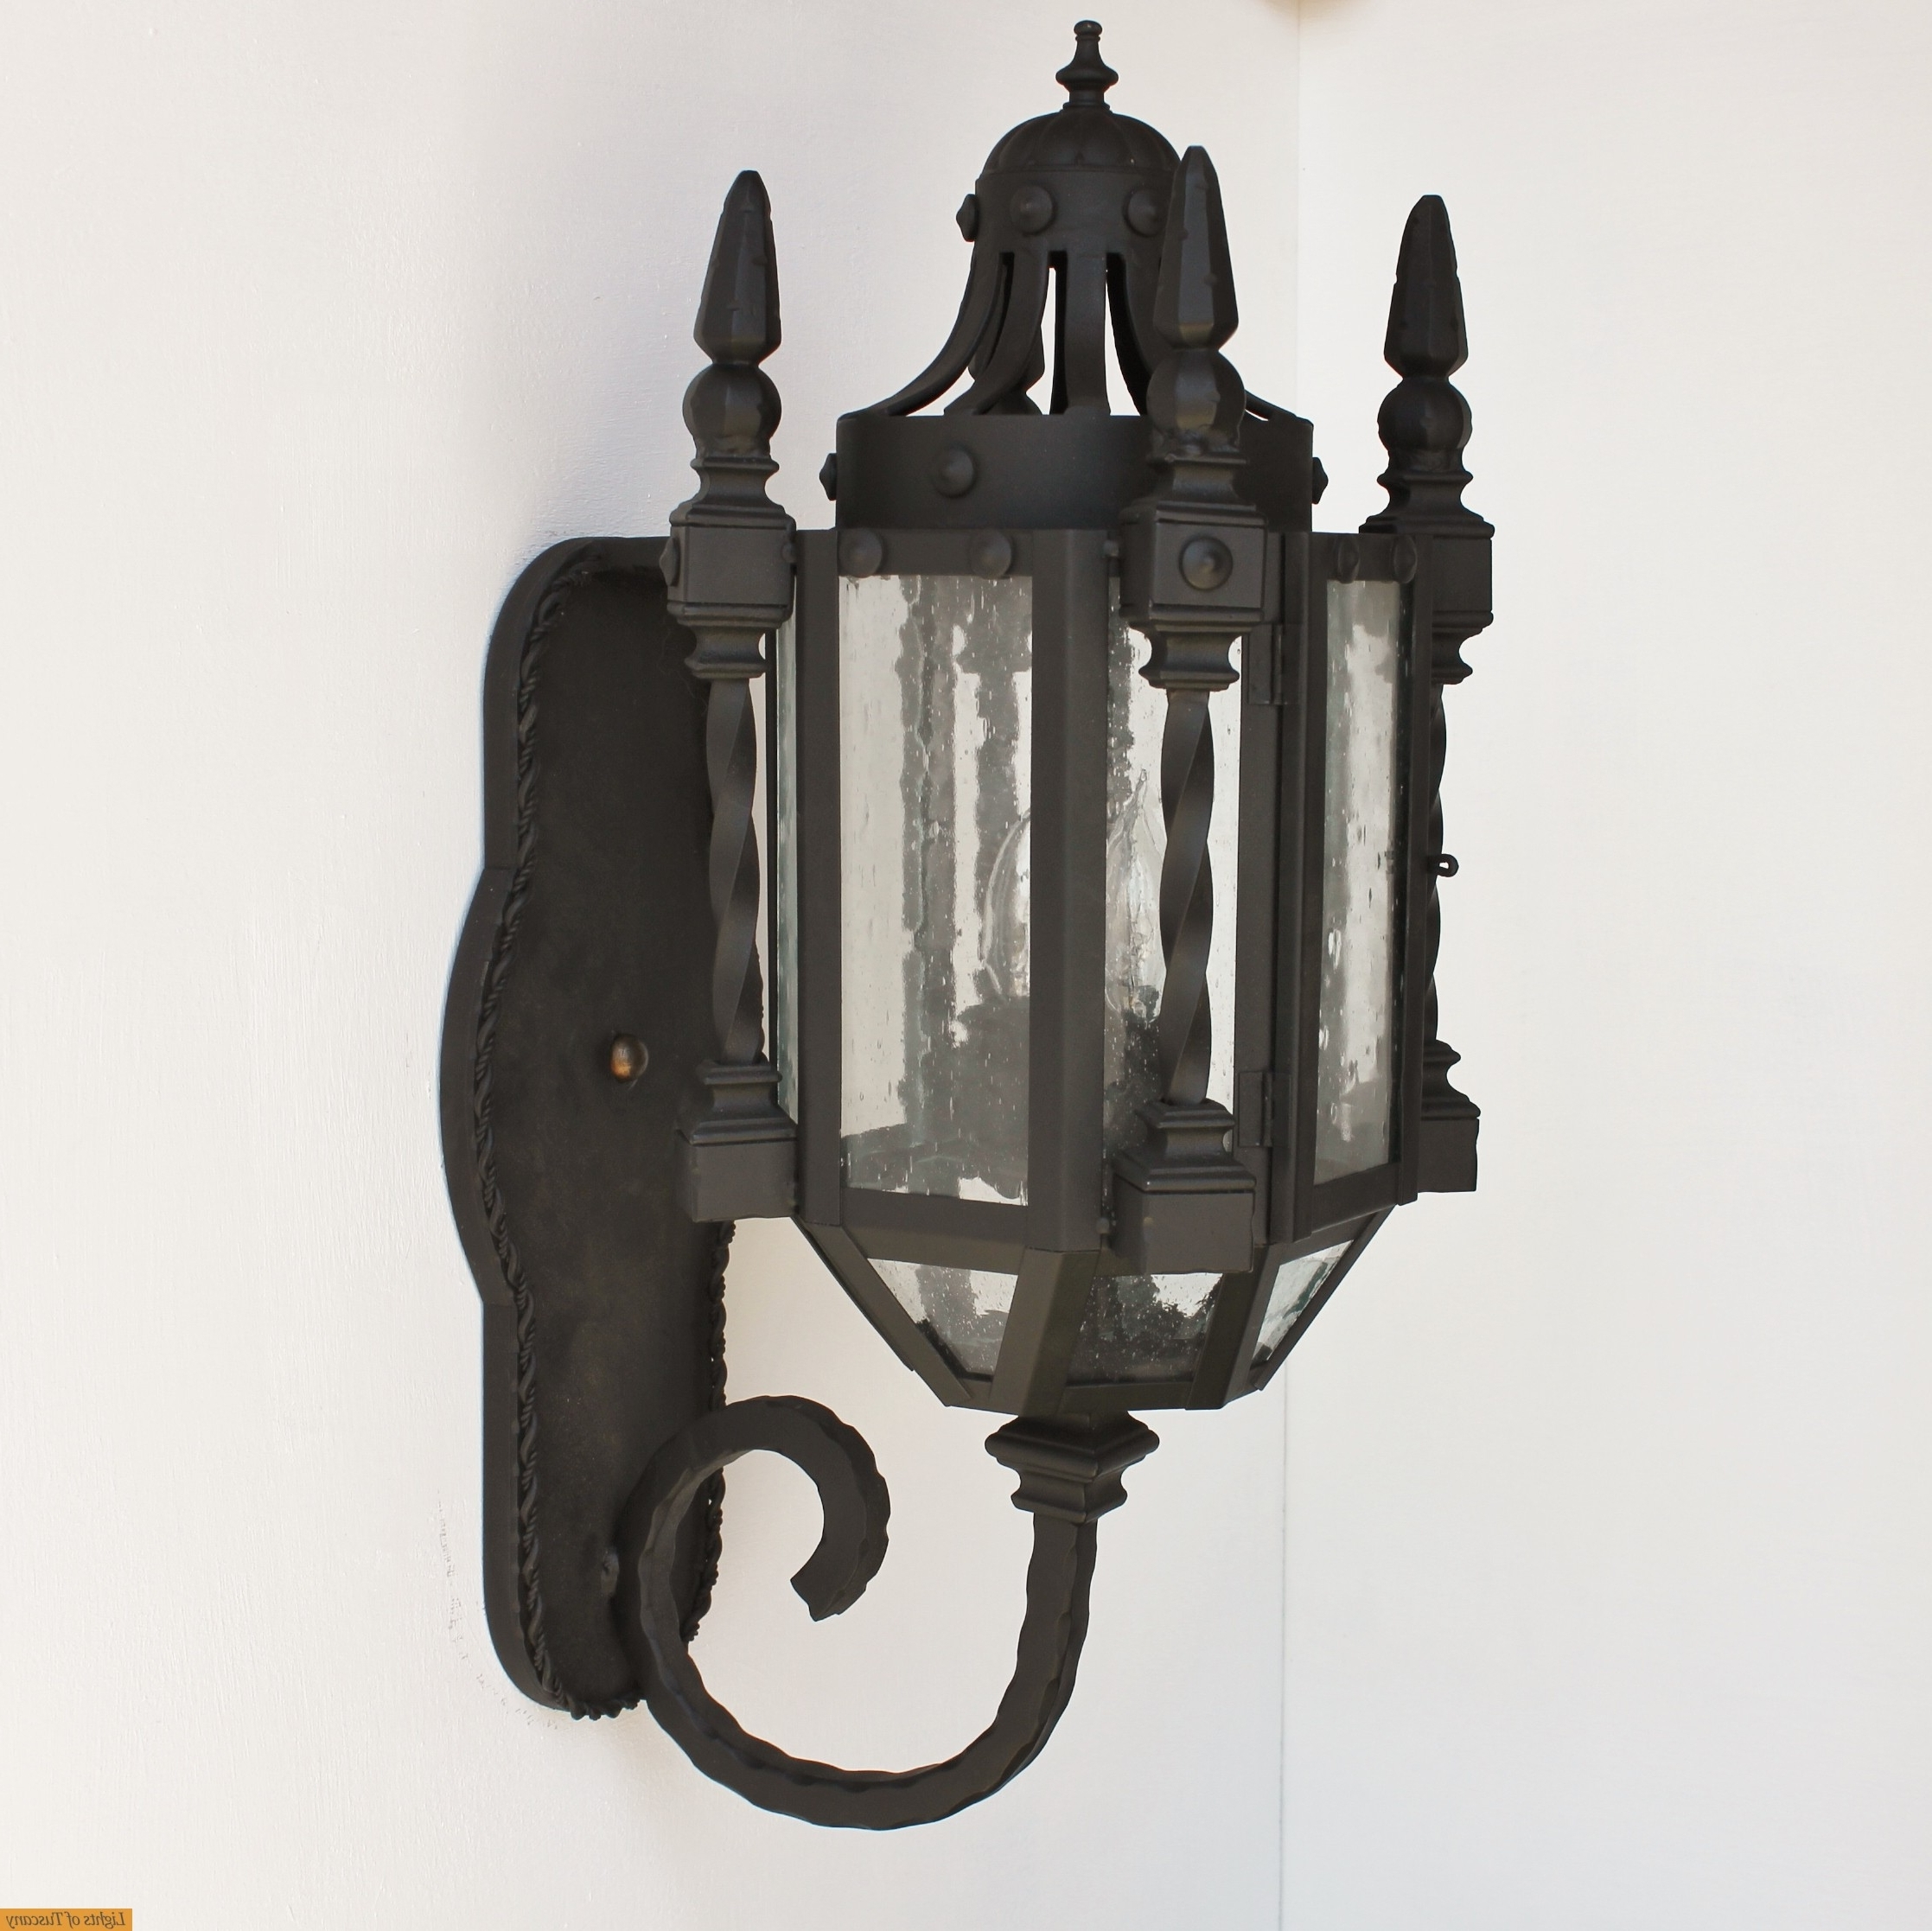 Gothic Outdoor Wall Lighting Inside Fashionable Lights Of Tuscany 7046 3 Wrought Iron Gothic/medieval Wall Lanter (Gallery 3 of 20)